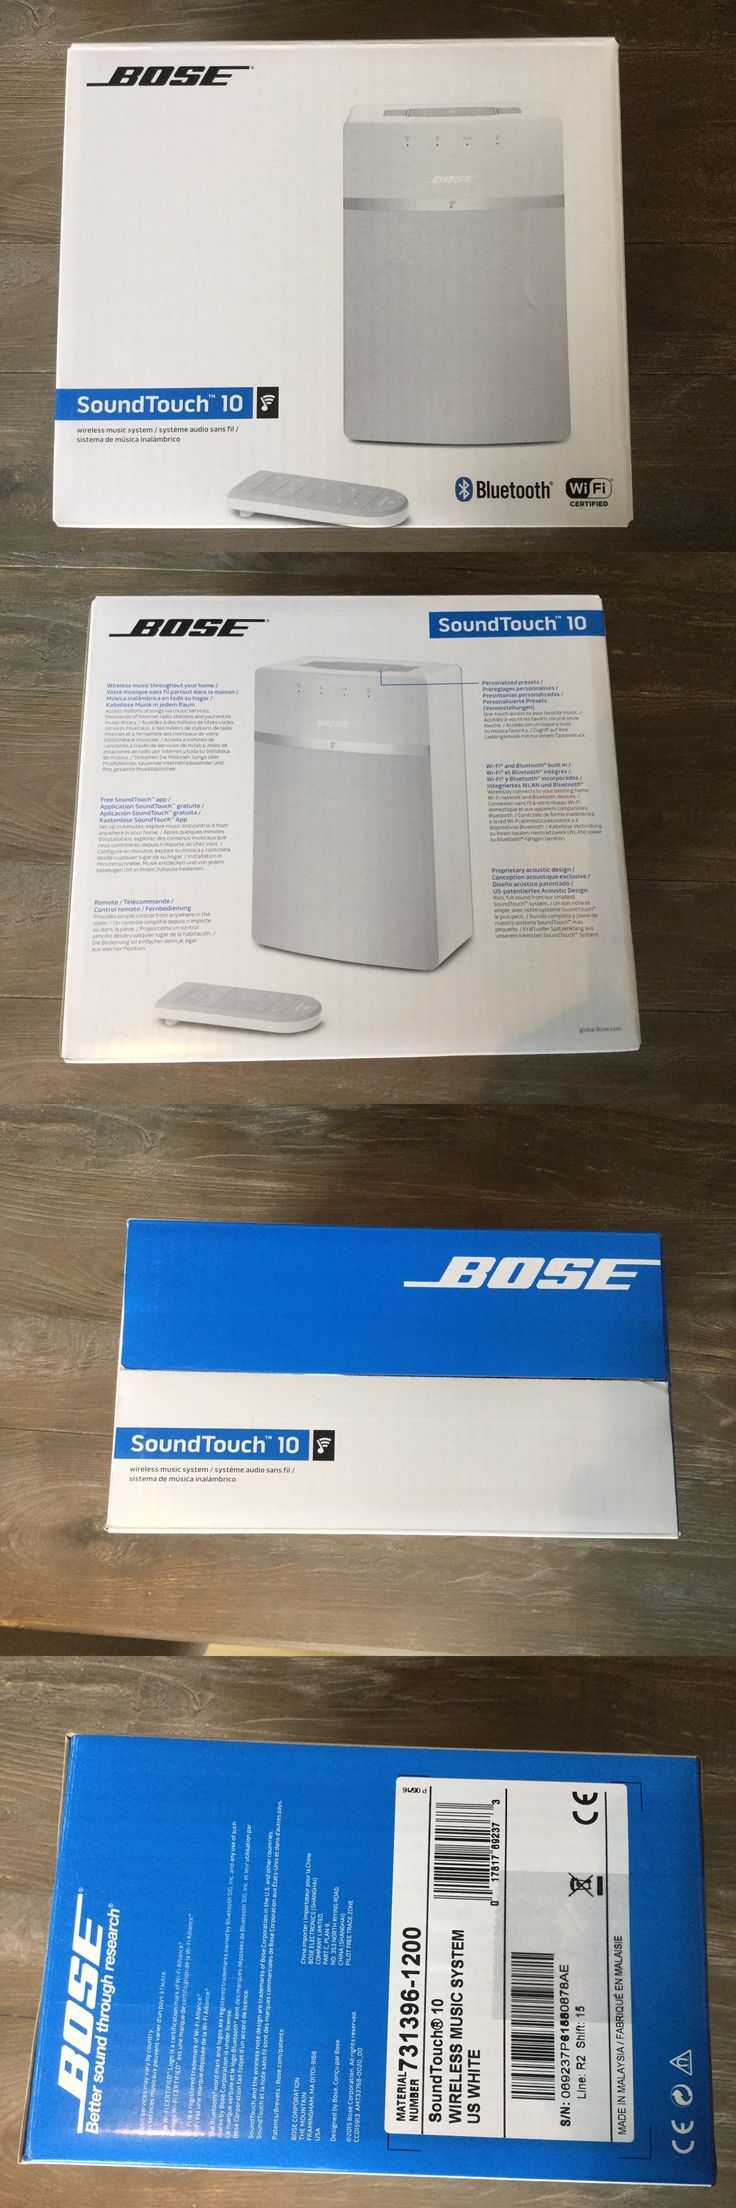 Other TV Video and Home Audio: New Factory Sealed Bose Soundtouch 10 Wi-Fi Wireless Music System -White -> BUY IT NOW ONLY: $176.99 on eBay!